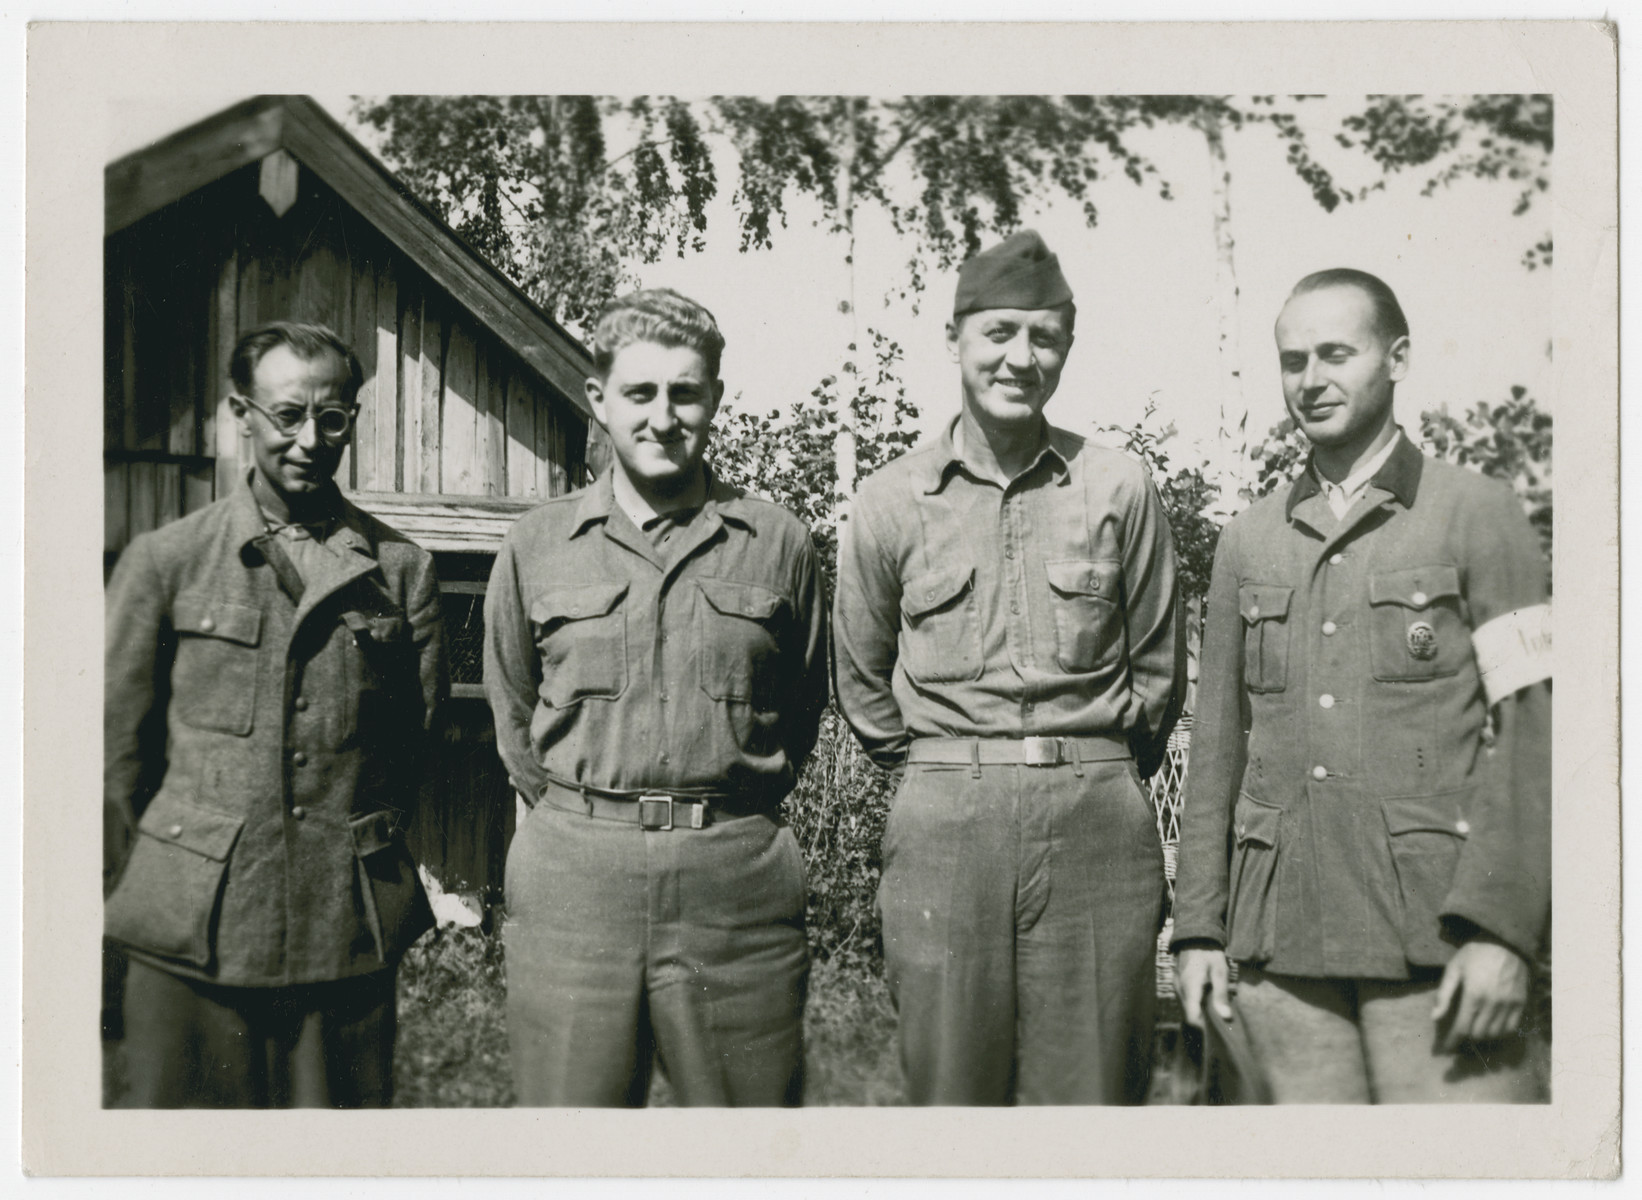 Two American soldiers pose with former members of the Wehrmacht  Norman Coulson is second from the left standing next to the other American soldier.